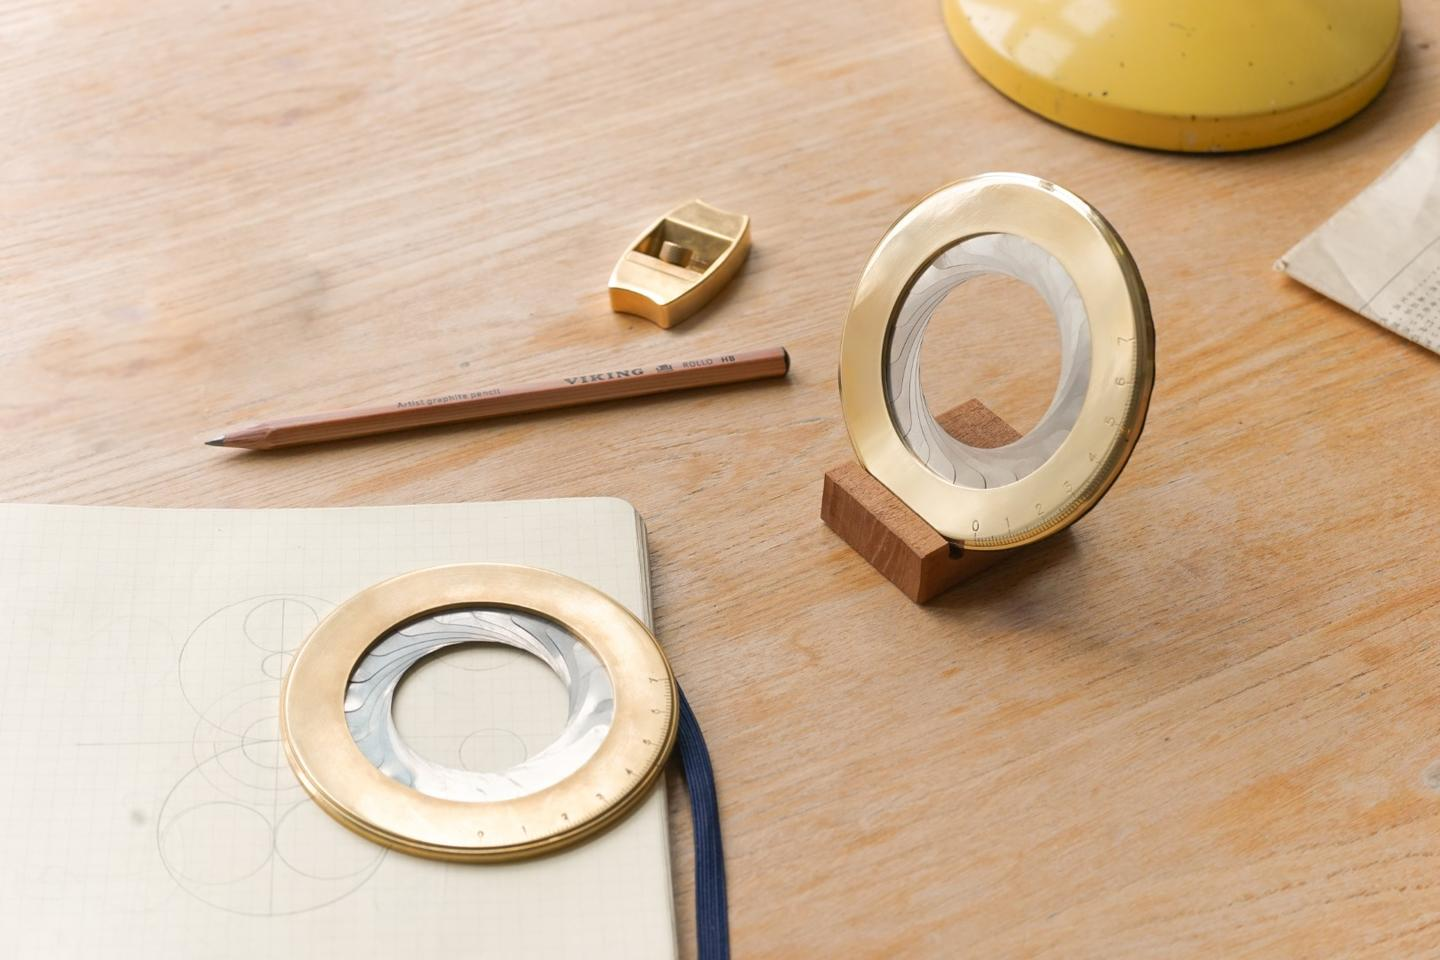 The Iris, shown with its wooden base, alongside Makers Cabinet's first Kickstarter project, theHøvel